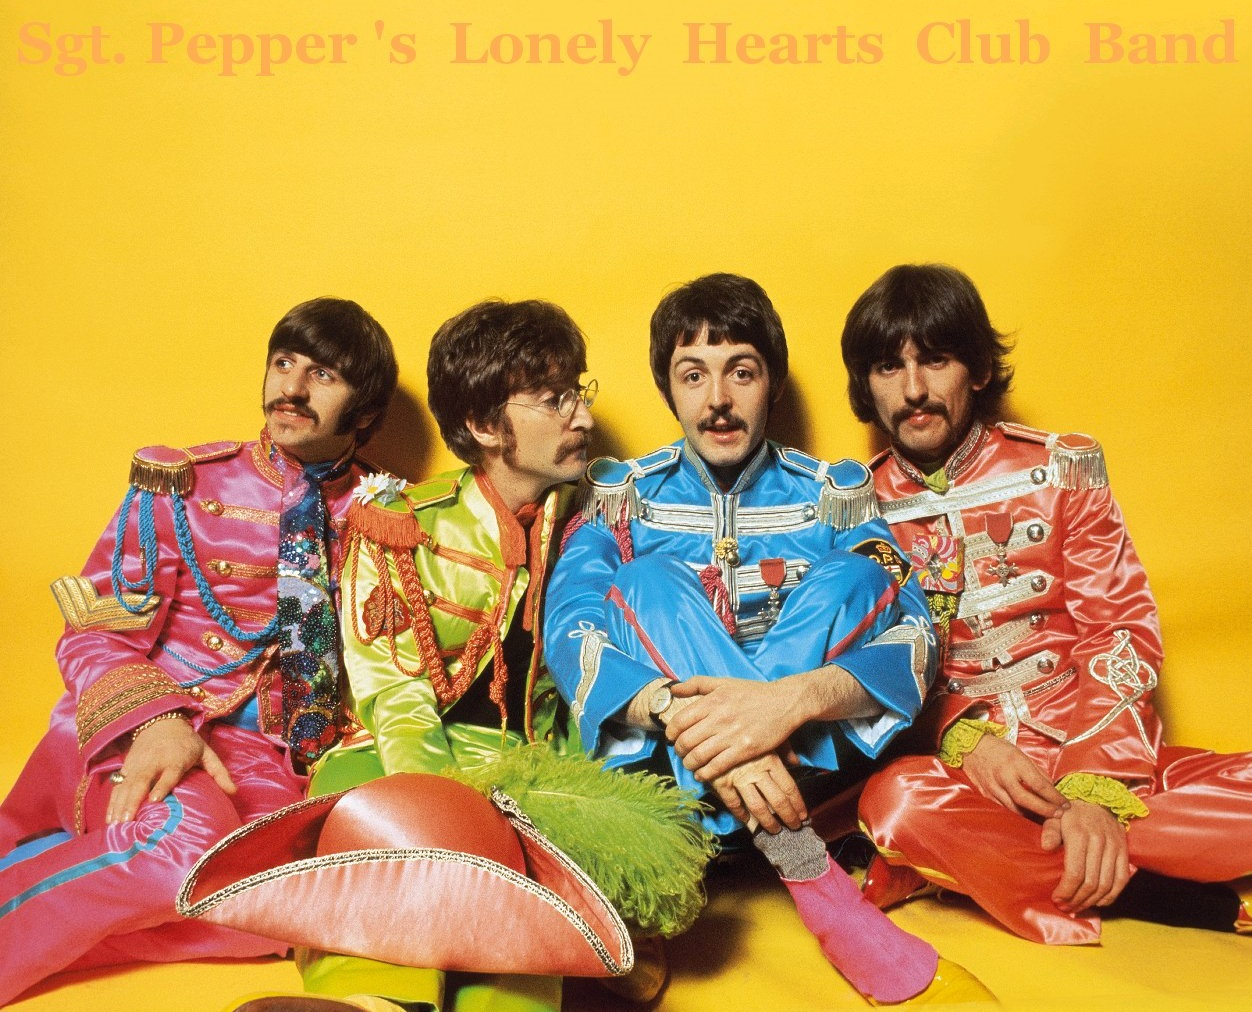 http://2.bp.blogspot.com/-KFLjZAl_aEY/UVDe7tCyNXI/AAAAAAAAWok/XegTvHkfkb0/s1600/The-Beatles-+sgt.+pepper%27s+lonely++hearts+club+band+5+stars+phistars+worthy+wallpaper+music+songs++wallpaper.jpg